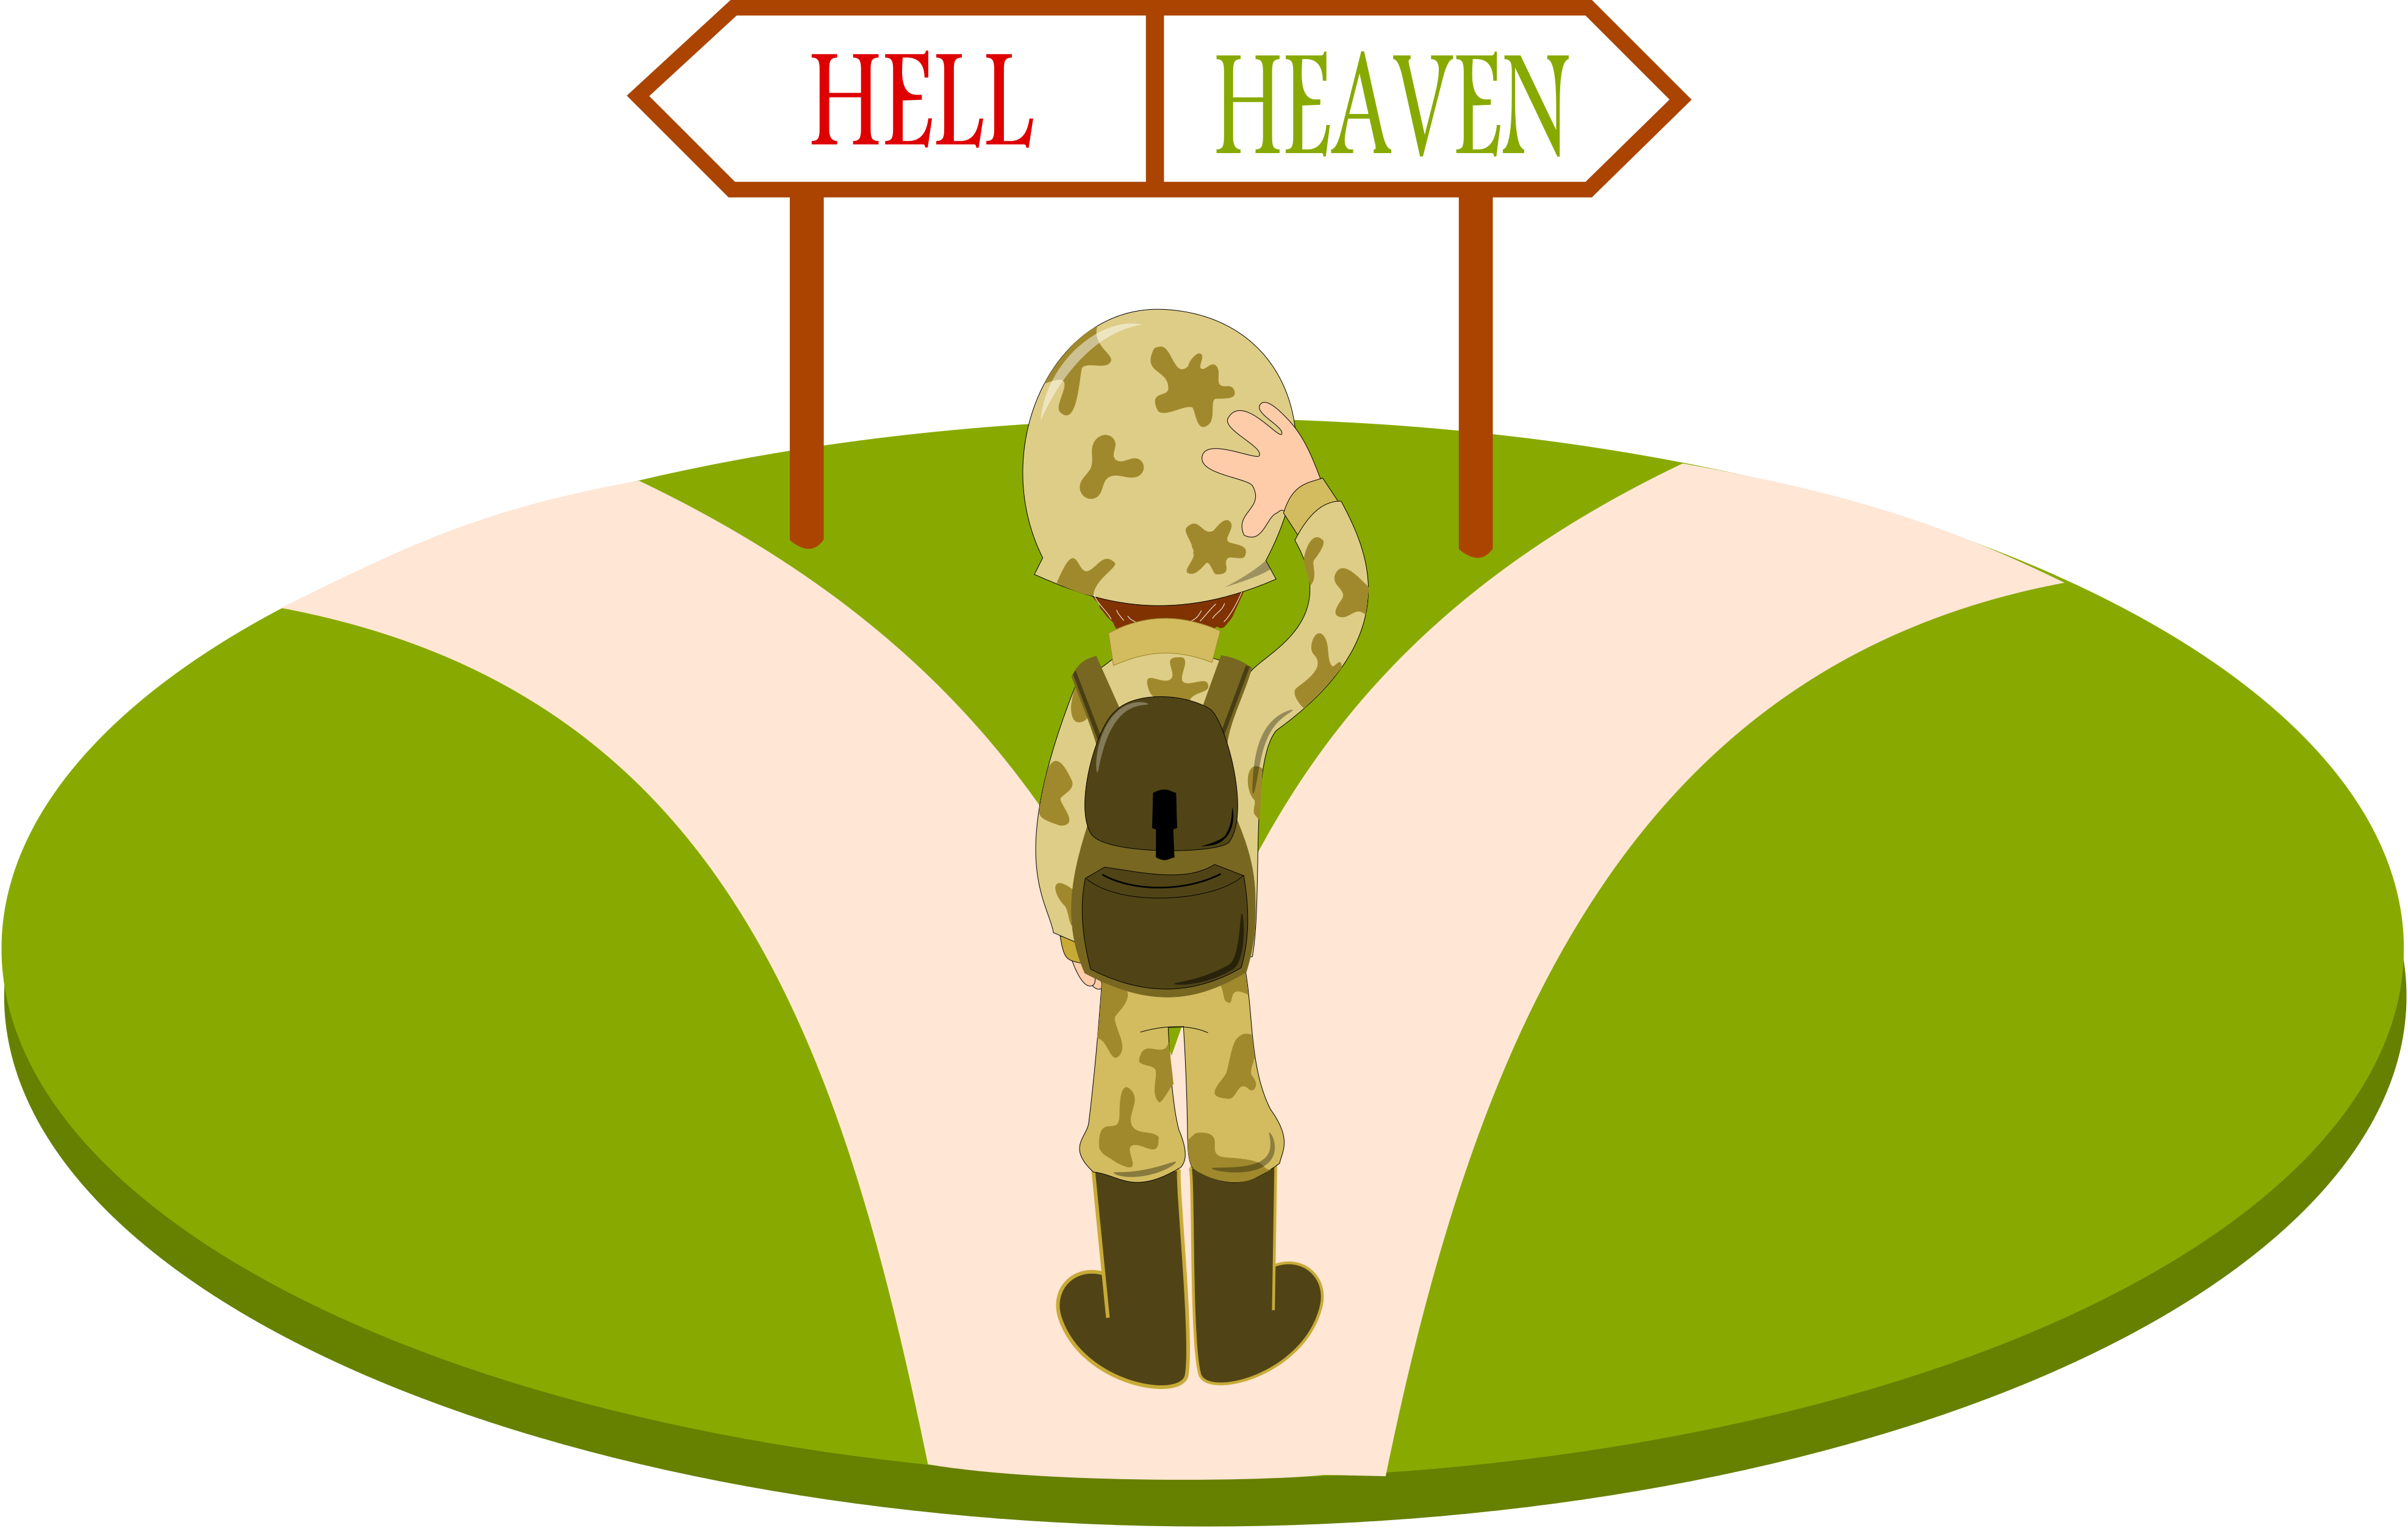 Heaven clipart afterlife.